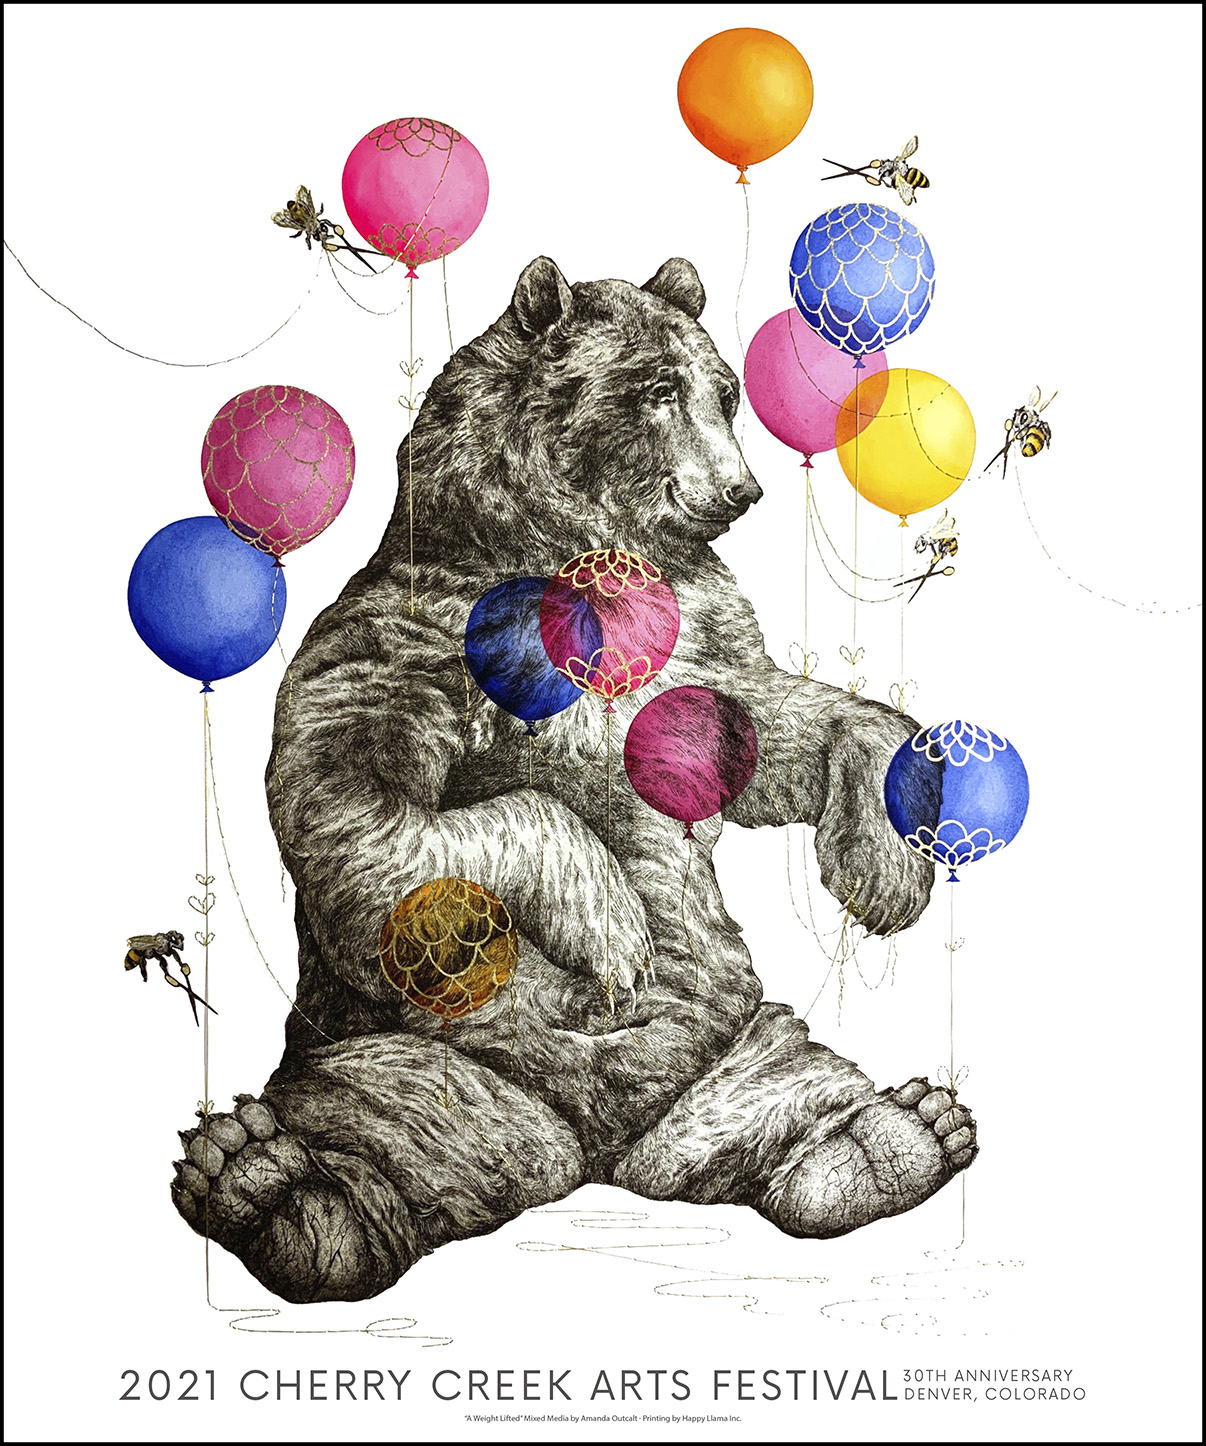 2021 Cherry Creek Arts Festival Poster - Image of bear with balloons and bees cutting string